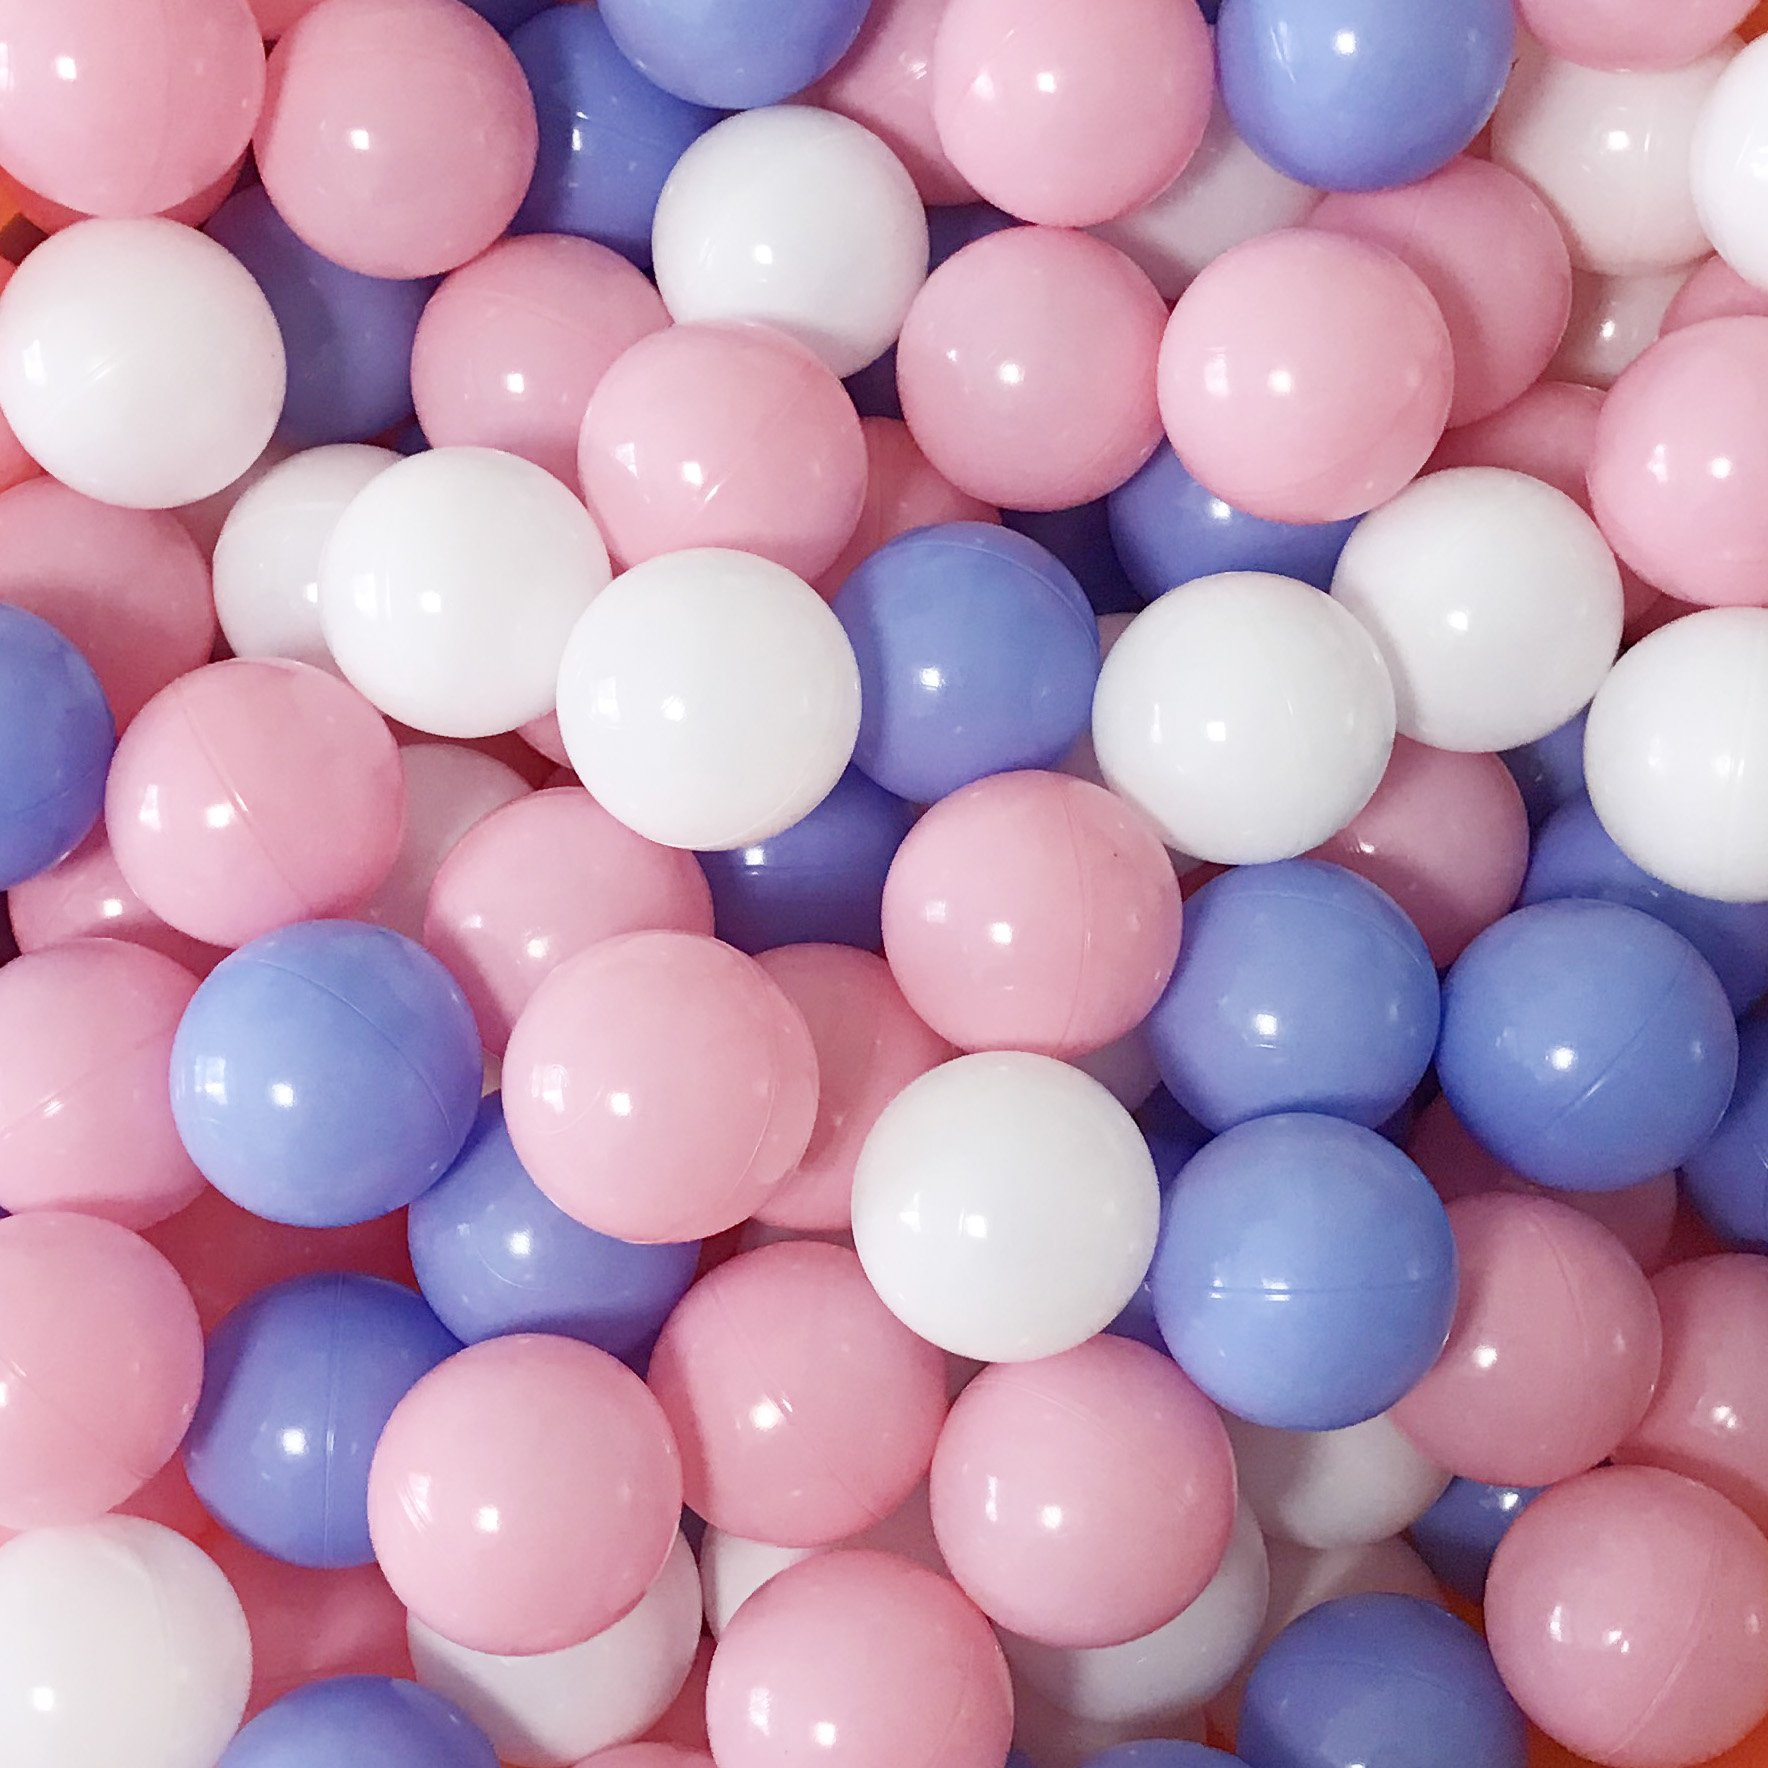 Thenese Pit Balls Crush Proof Plastic Children's Toy Balls Macaron Ocean Balls Small Size 2.15 Inch Phthalate & BPA Free Pack of 800 White&Blue&Pink